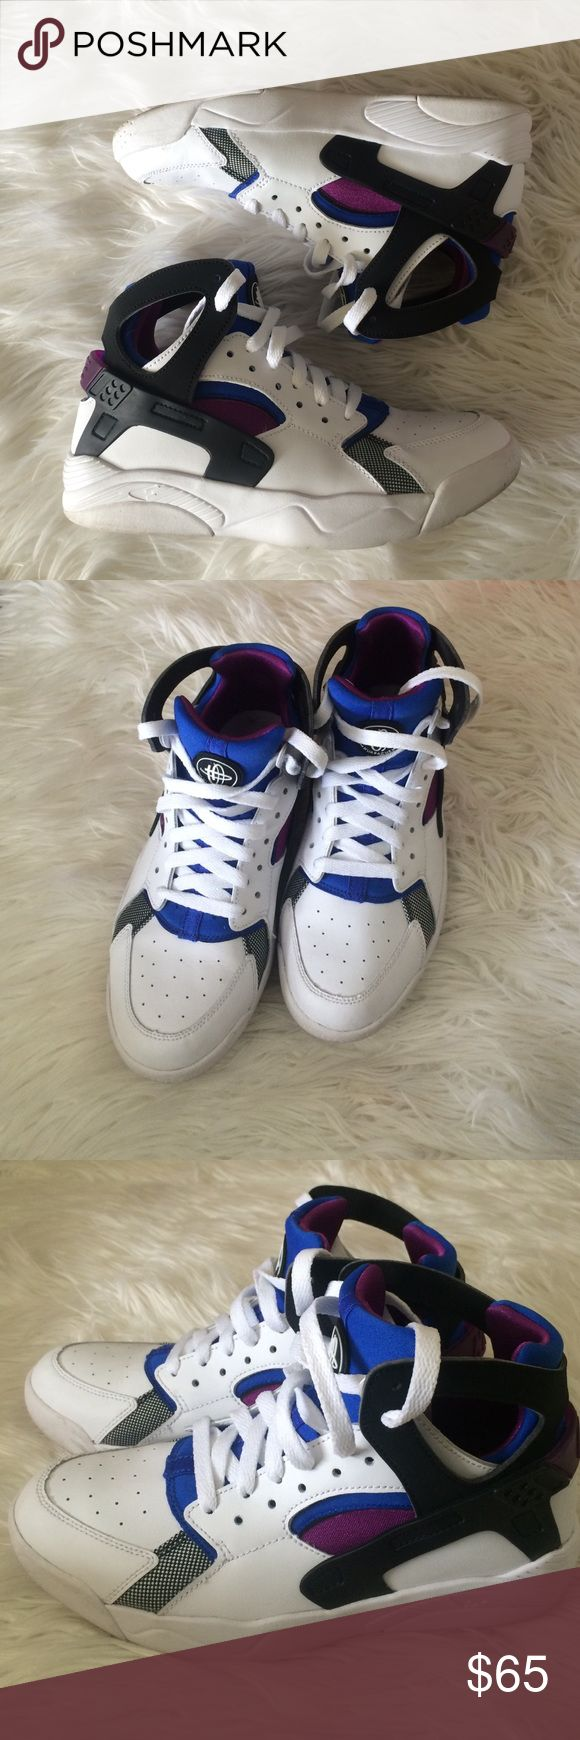 Nike Huaraches These Nike Flight (GS) Huaraches are youth size 6. Equivalent to a women's 7.5 in Huaraches. They are white high top with royal blue and purple. Comfortable and only worn a few times. Comes with original box, not pictured. I paid $90 for them. Nike Shoes Athletic Shoes